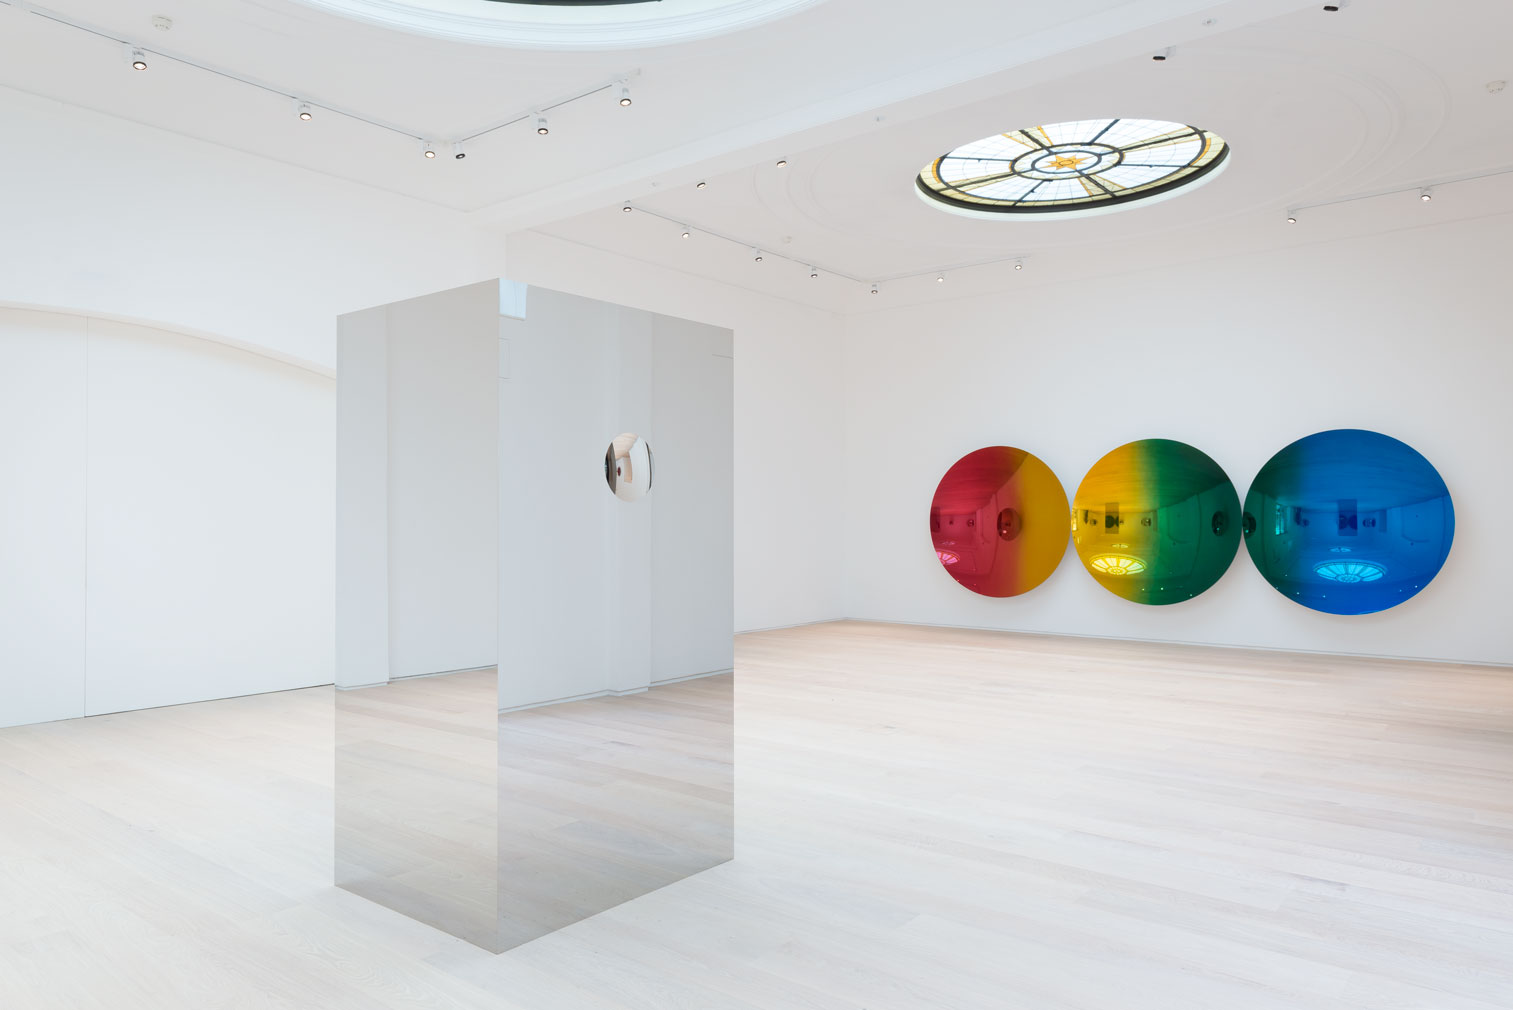 Installation view of Anish Kapoor at London's Pitzhanger Manor